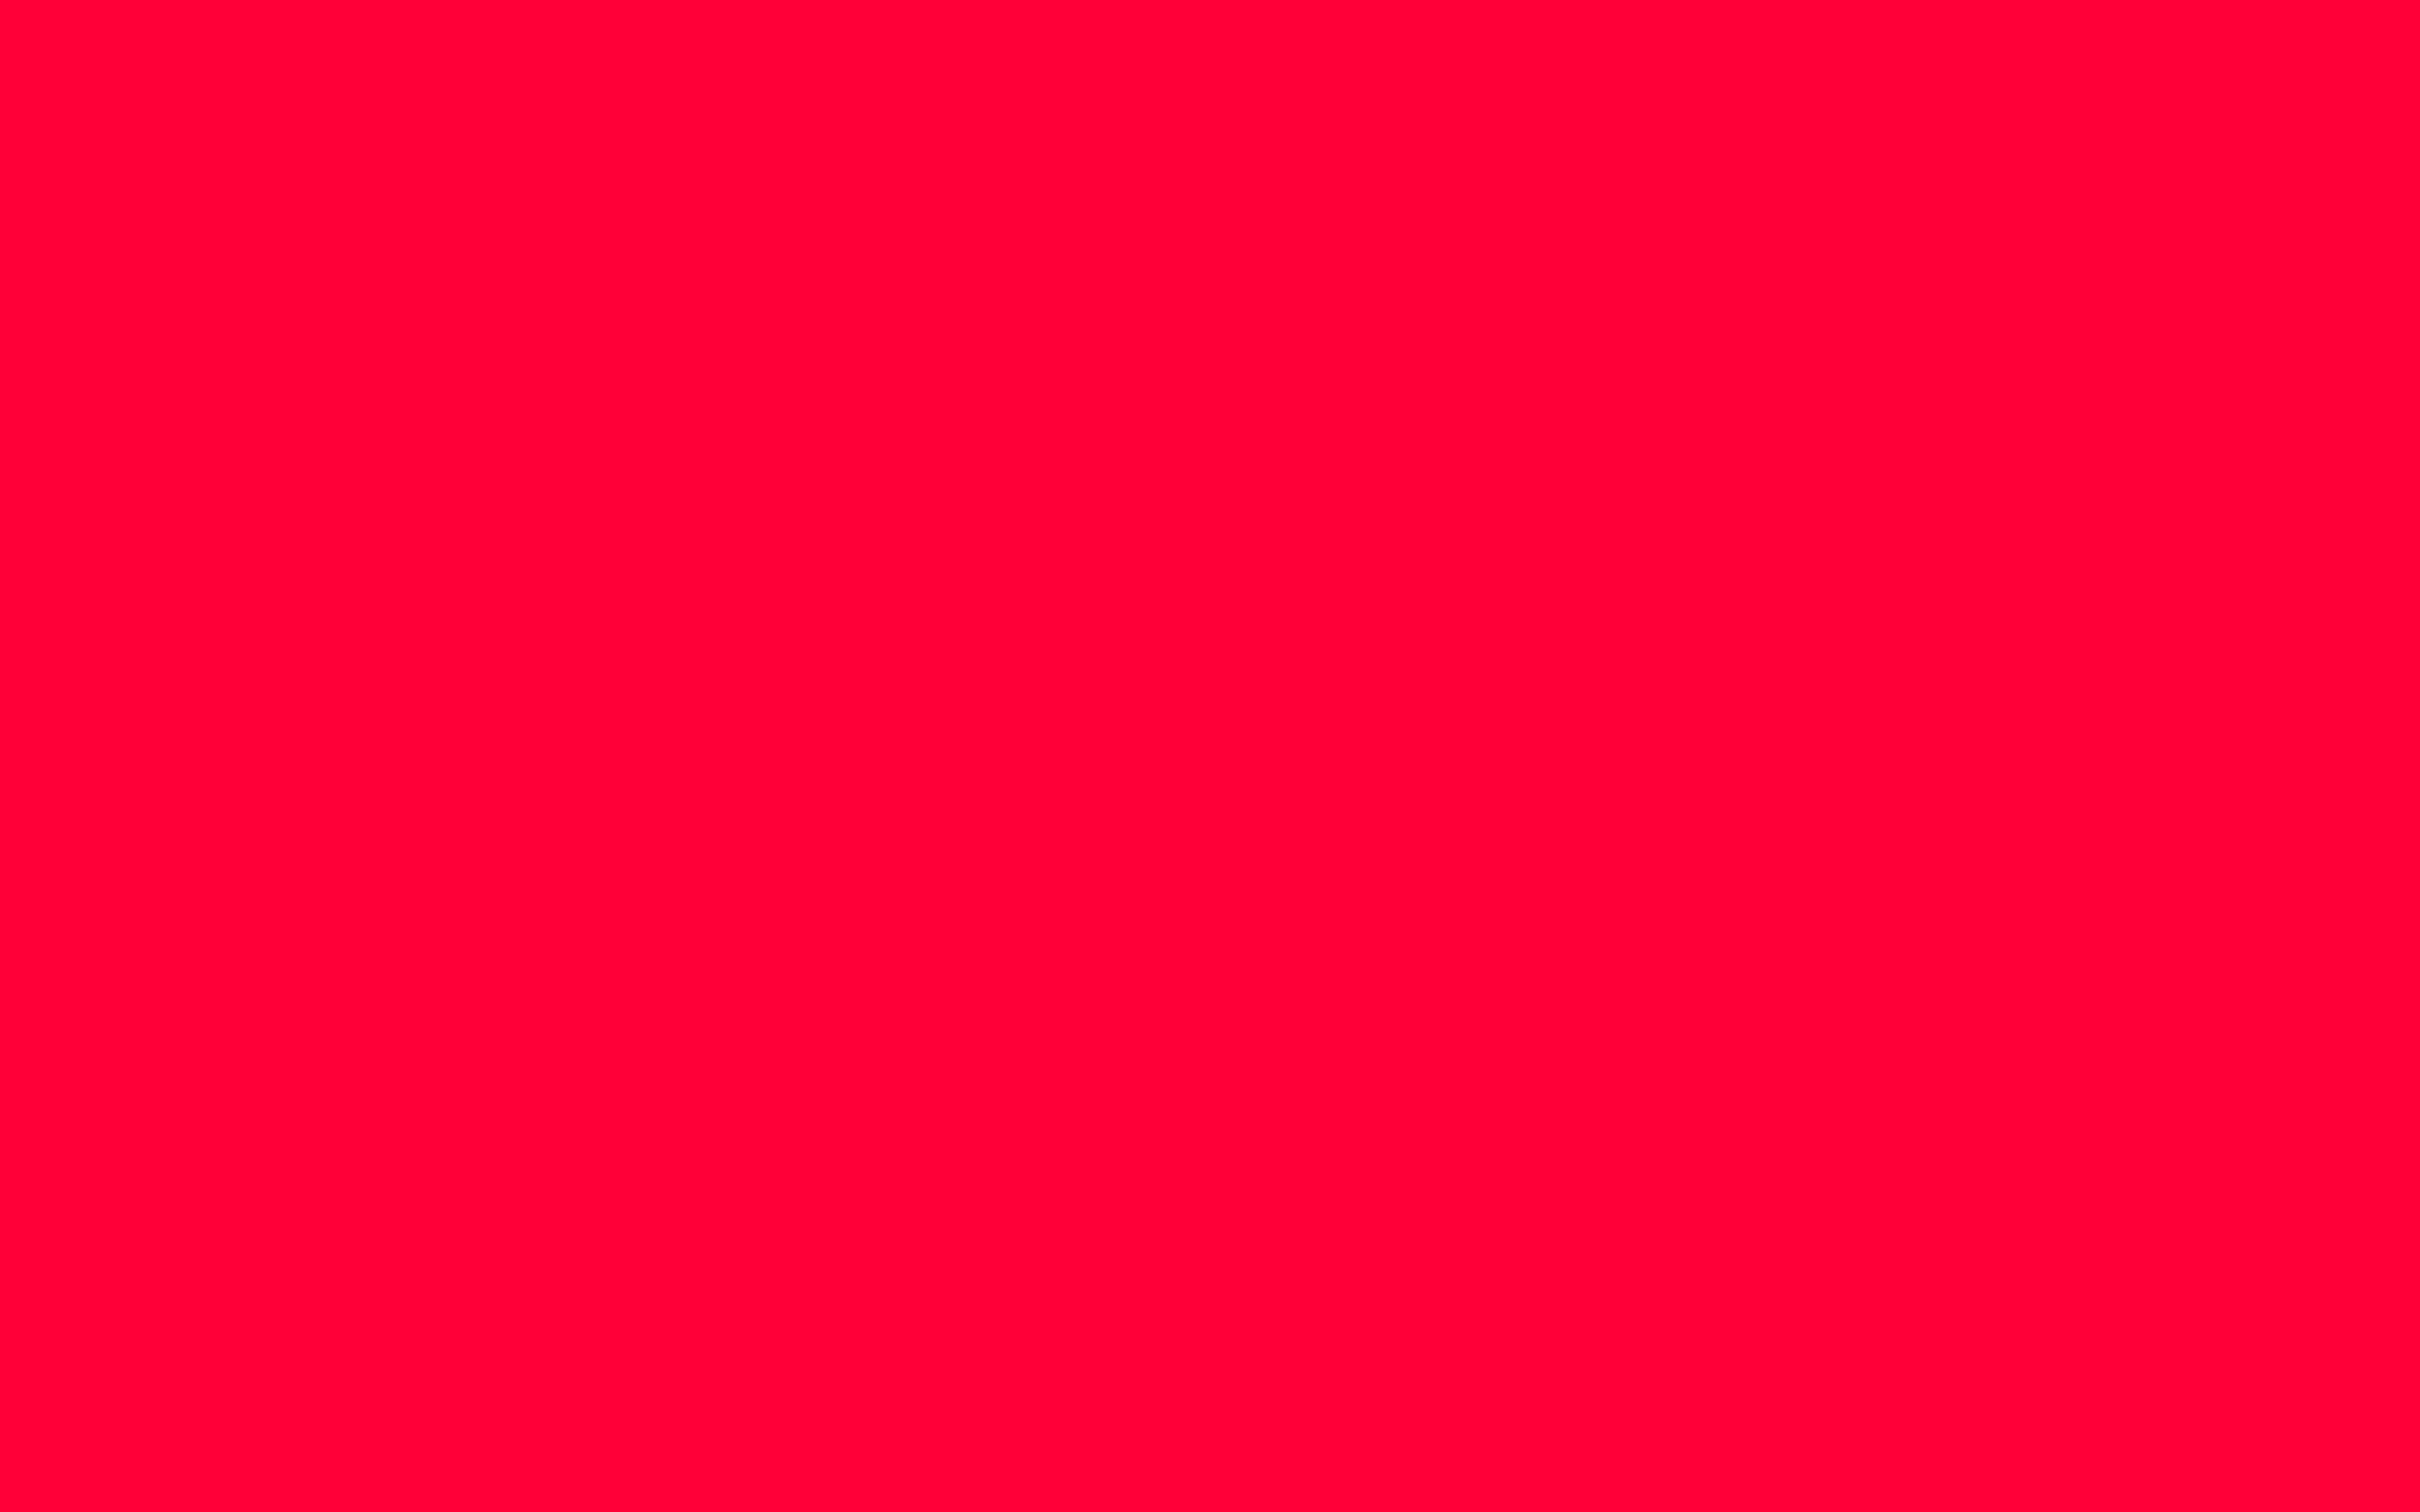 2560x1600 Carmine Red Solid Color Background